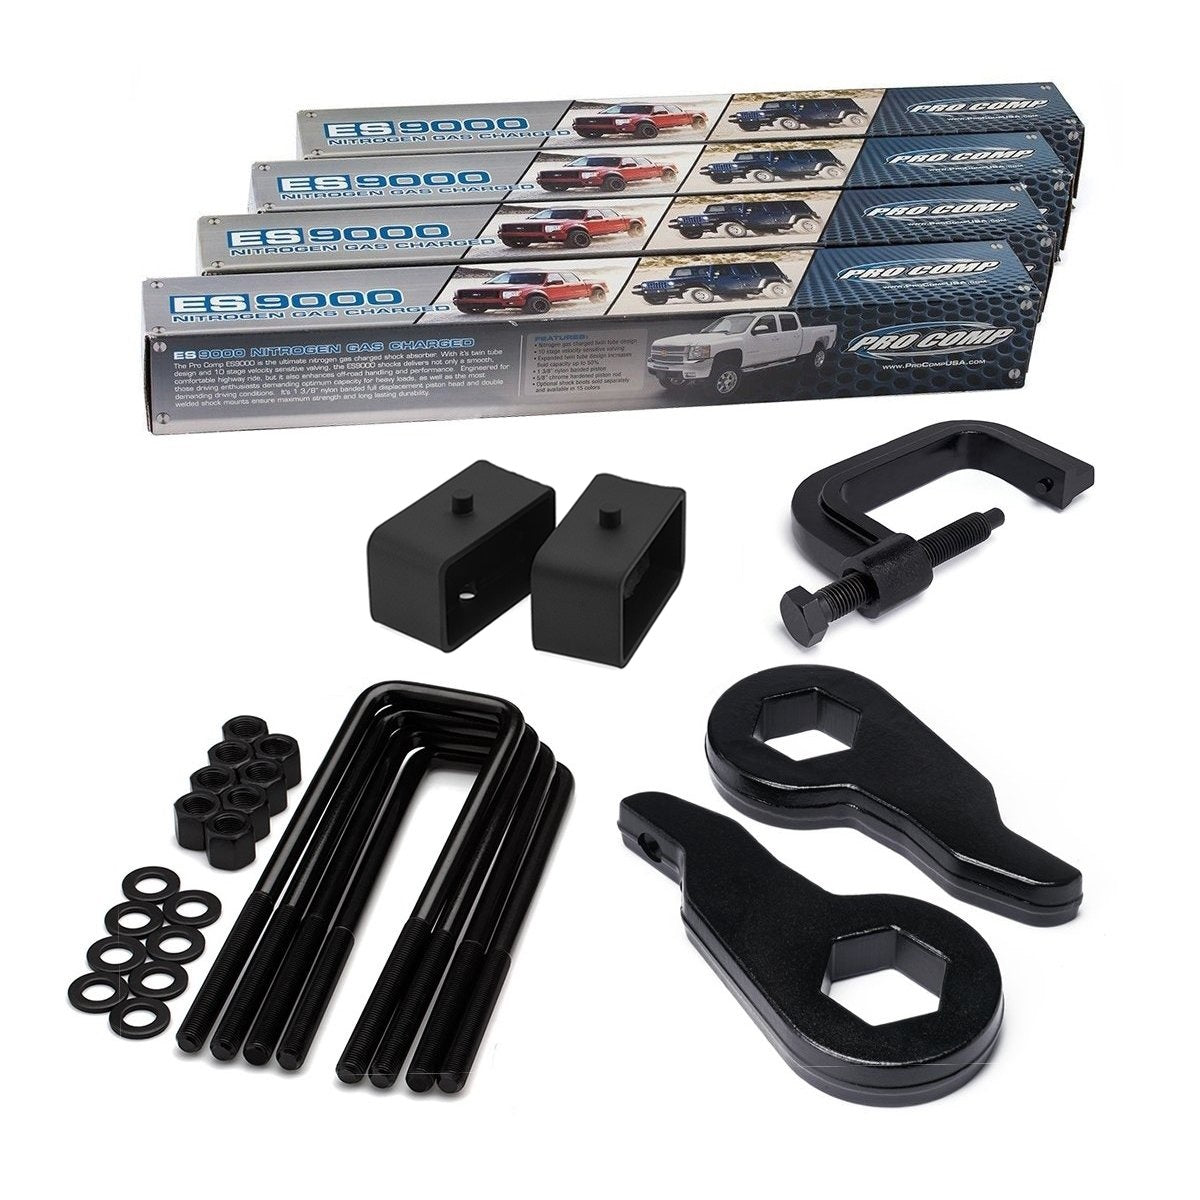 2000-2012 Chevy Suburban Full Lift Kit with Extended Shocks and Torsion Key Unloading/Removal Tool